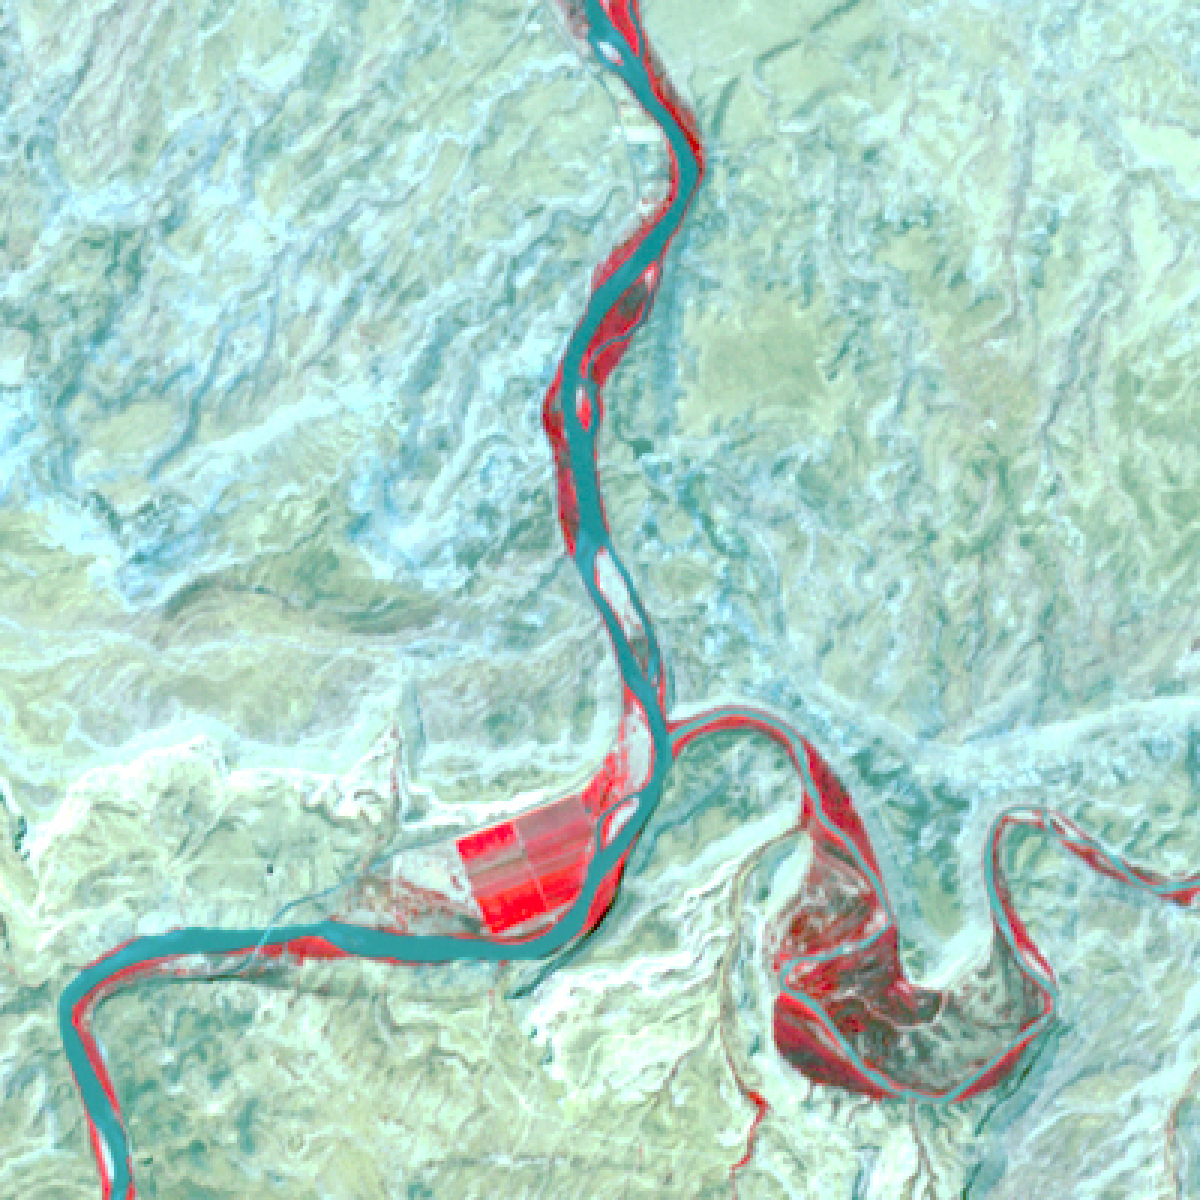 """This 2006 infrared image of the confluence of the Colorado and Dolores rivers in Utah was taken by the ASTER instrument on NASA's Terra satellite. The Colorado flows from north to south and the Dolores enters the image from the east. Vegetation appears bright red, including an alfalfa field along the Colorado and a wet """"bottom"""" area along the Dolores that has extensive tamarisk, an invasive tree from Eurasia."""